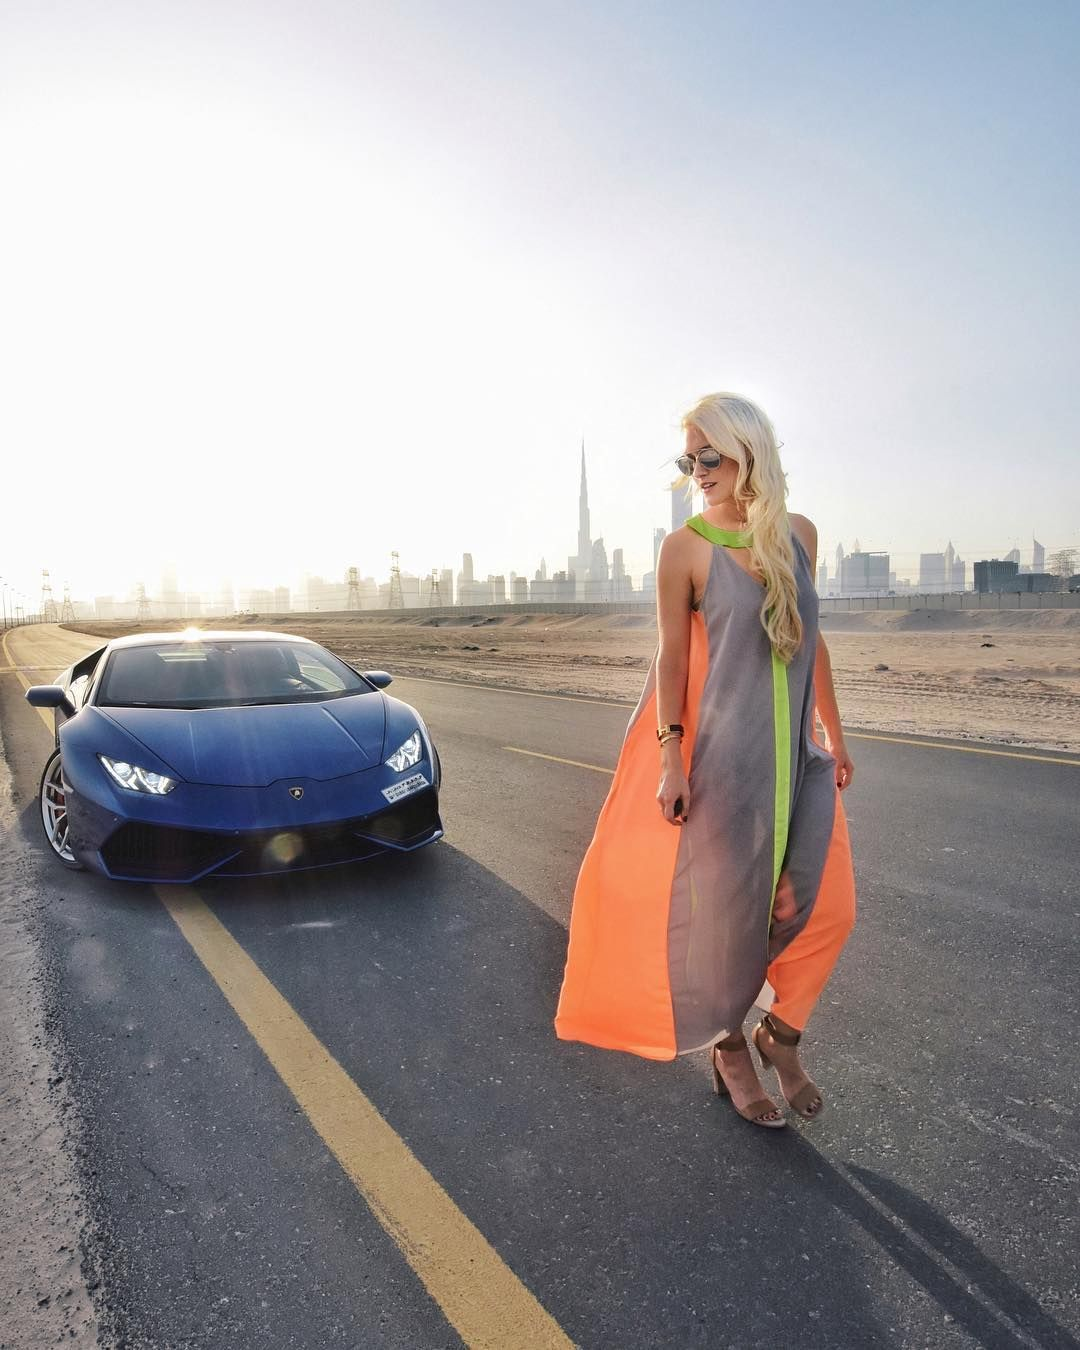 Supercars Gallery Supercar Blondie Lamborghini Lucy: Supercars Gallery: Supercar Blondie Lamborghini Lucy